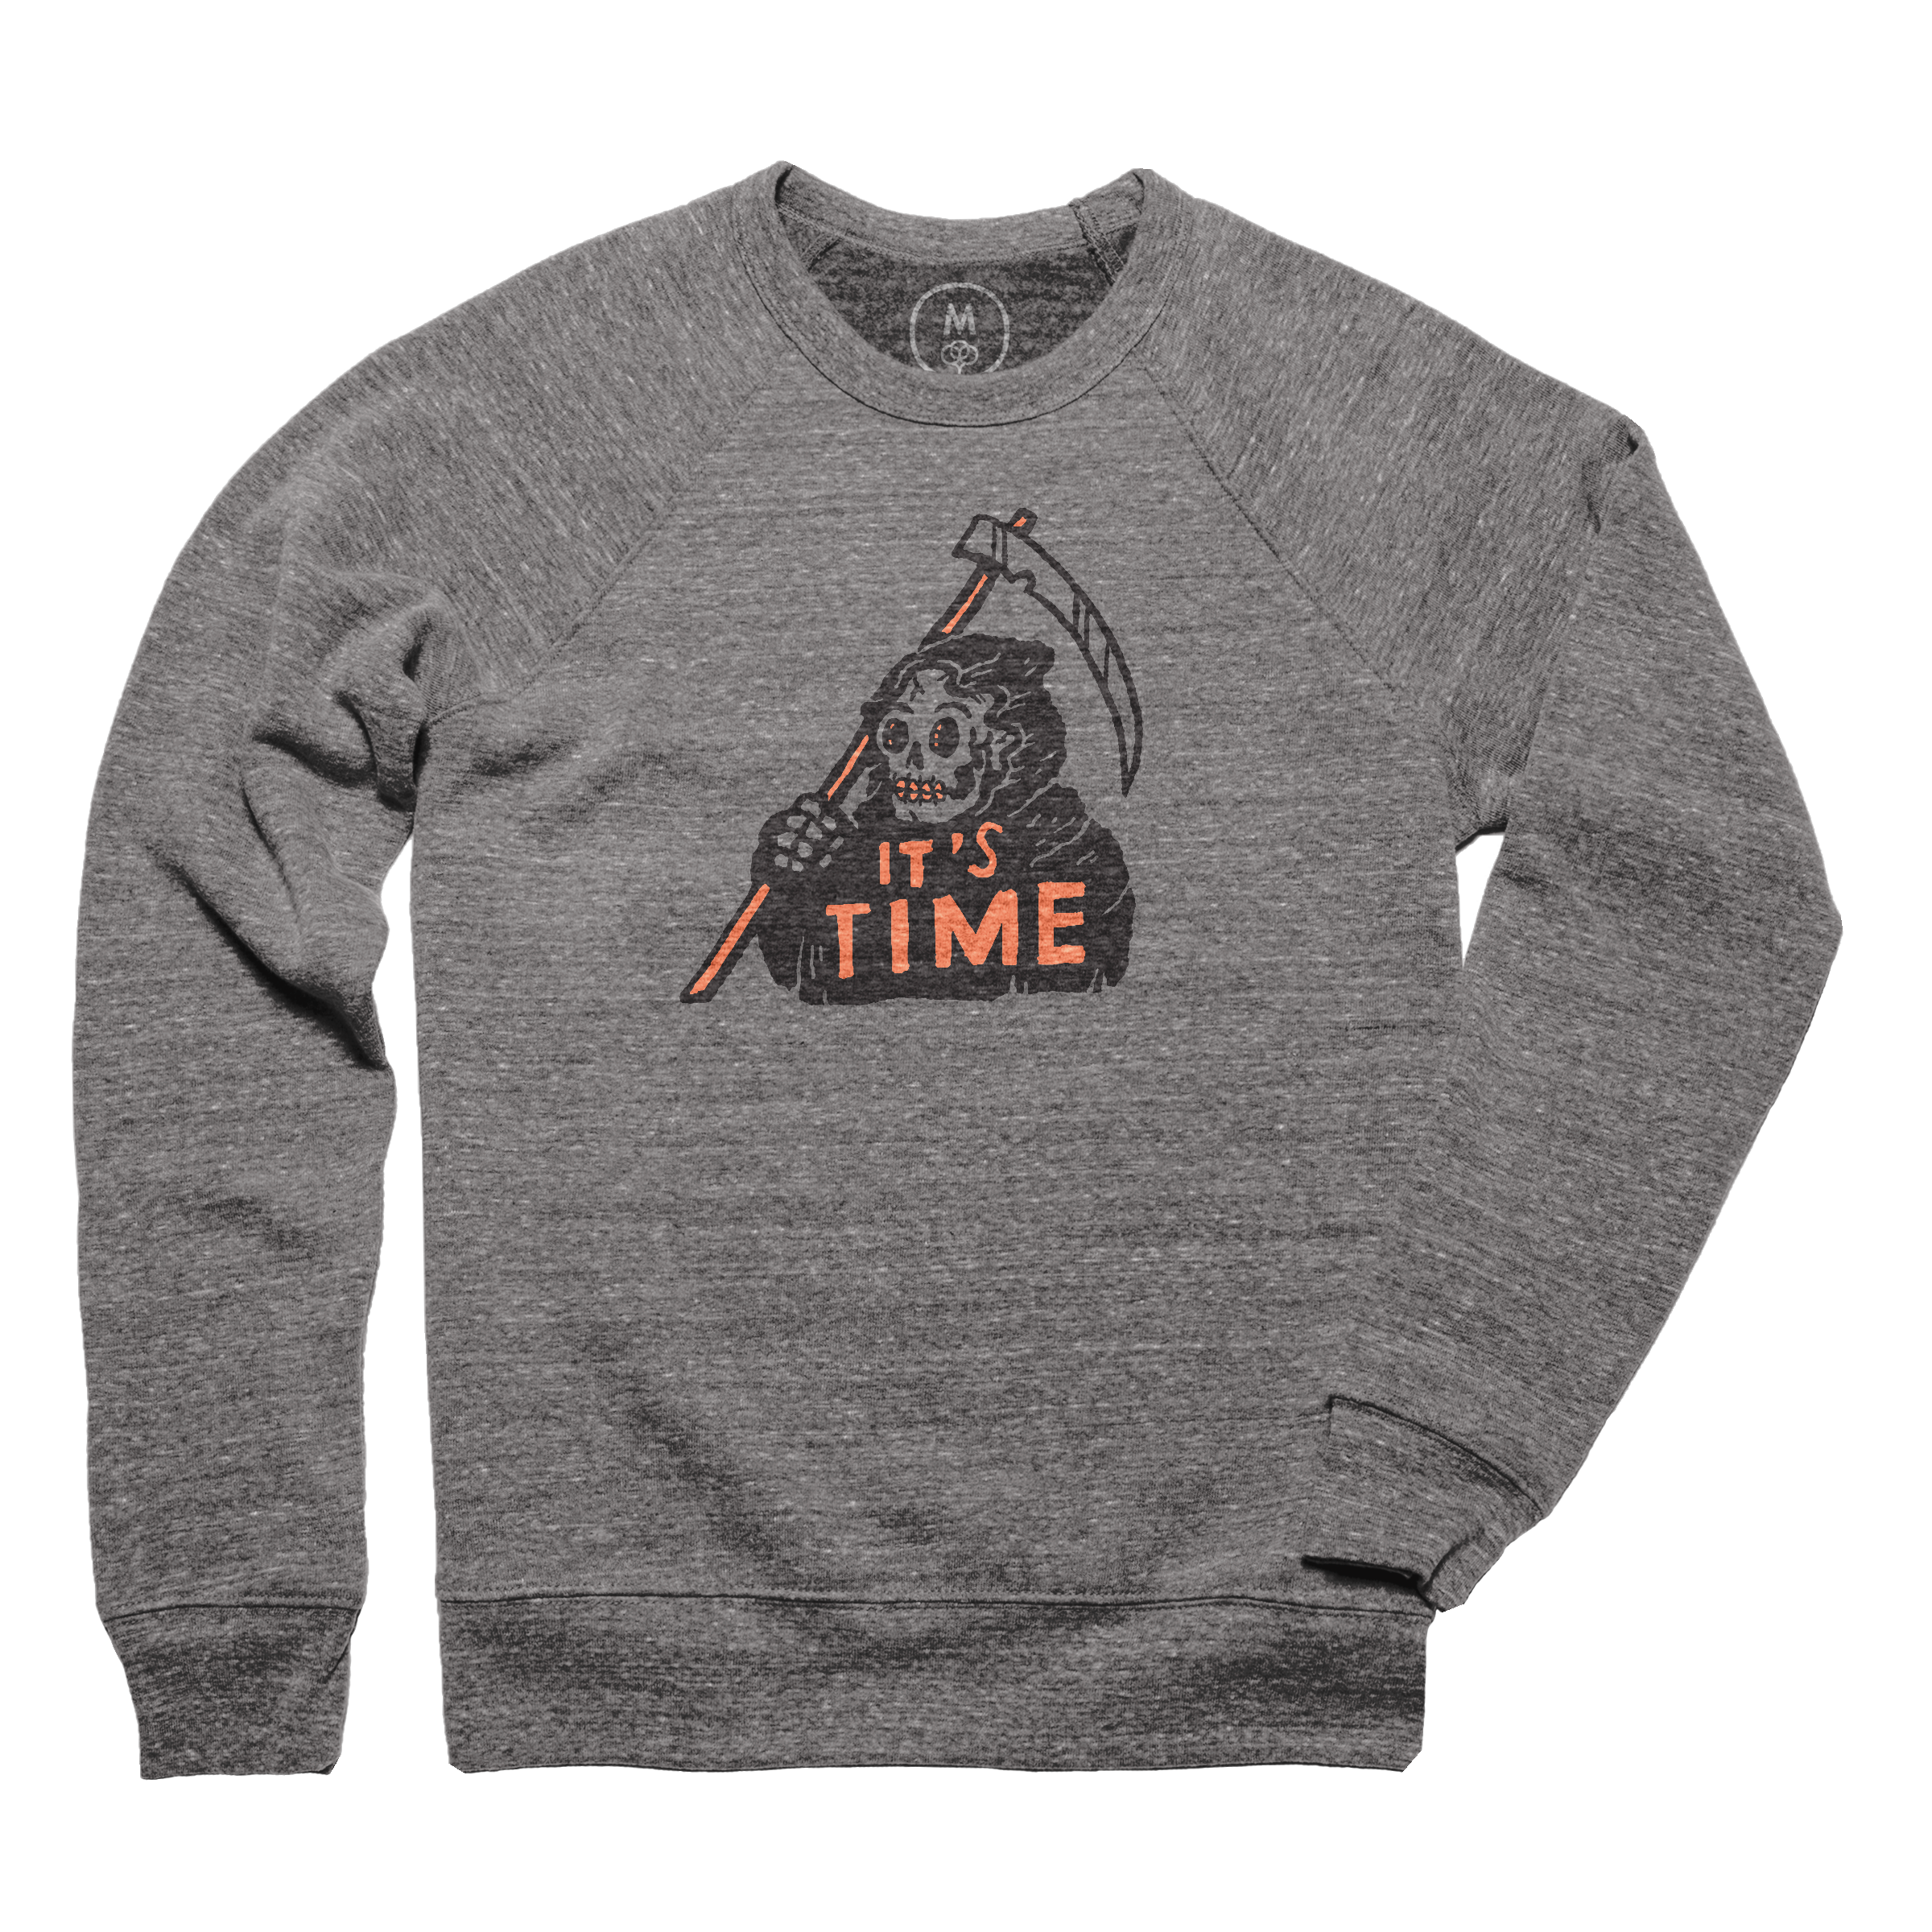 It's Time Pullover Crewneck